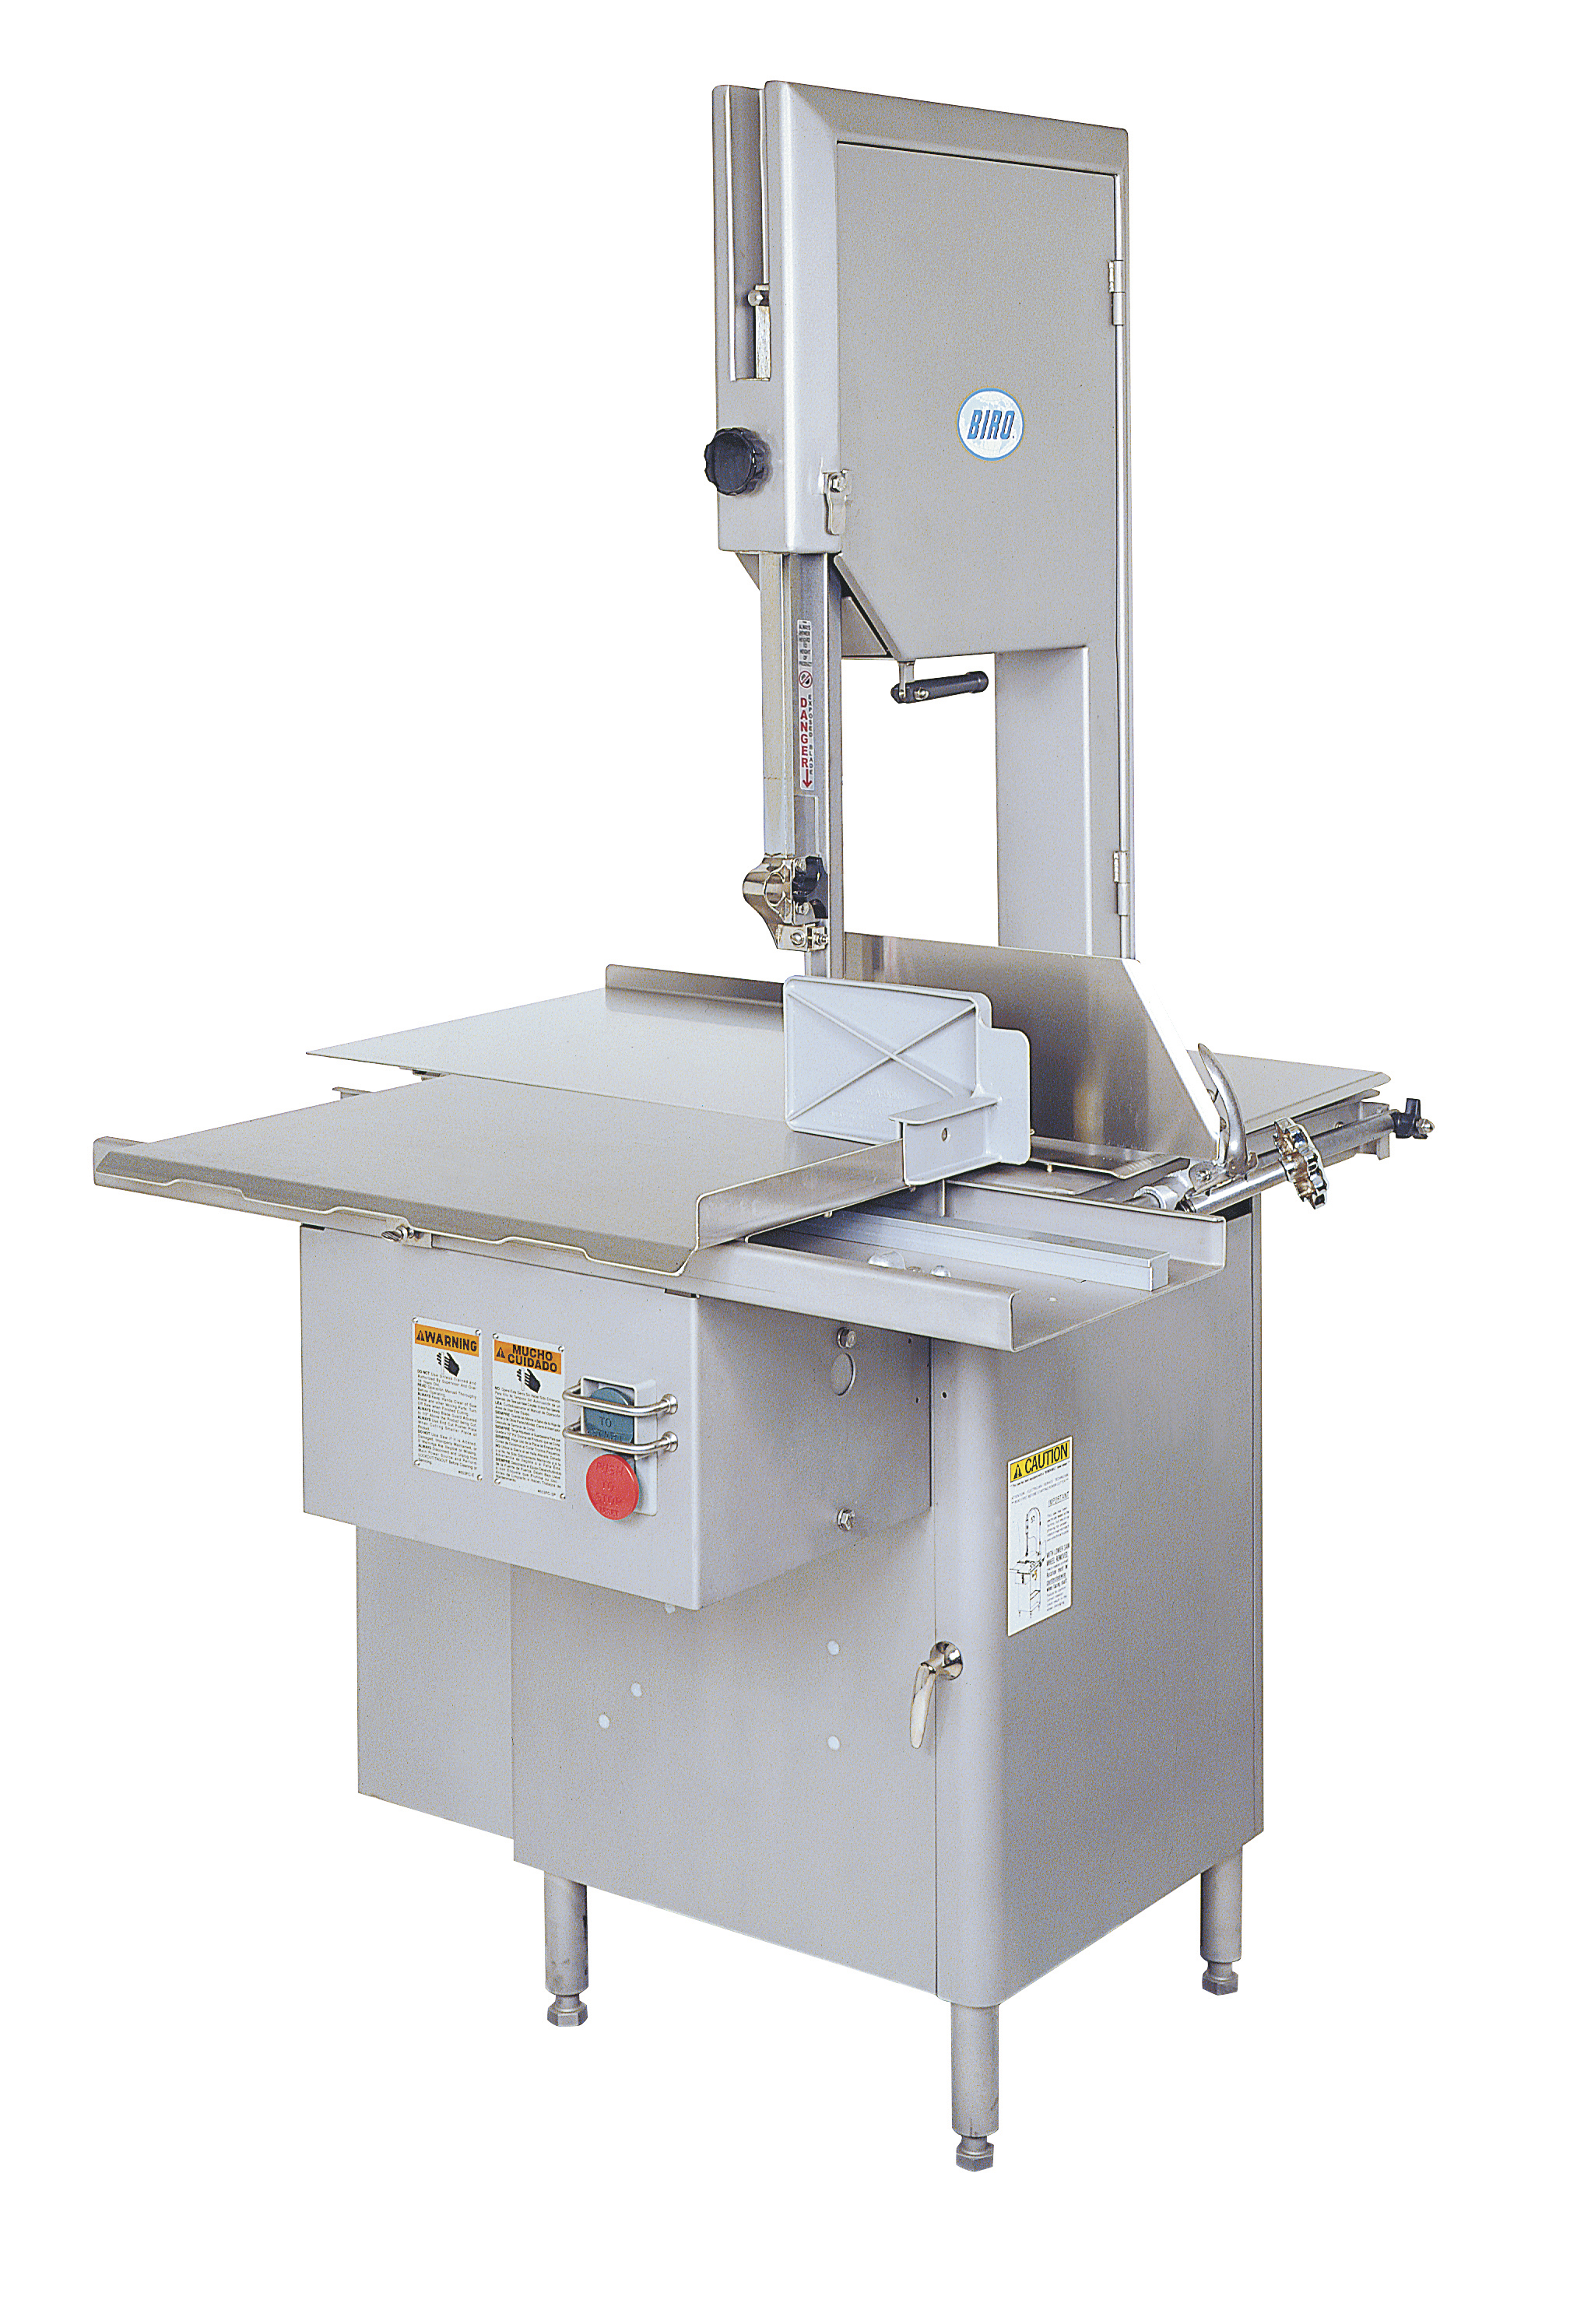 3334SS‐4003FH Power Meat Cutter